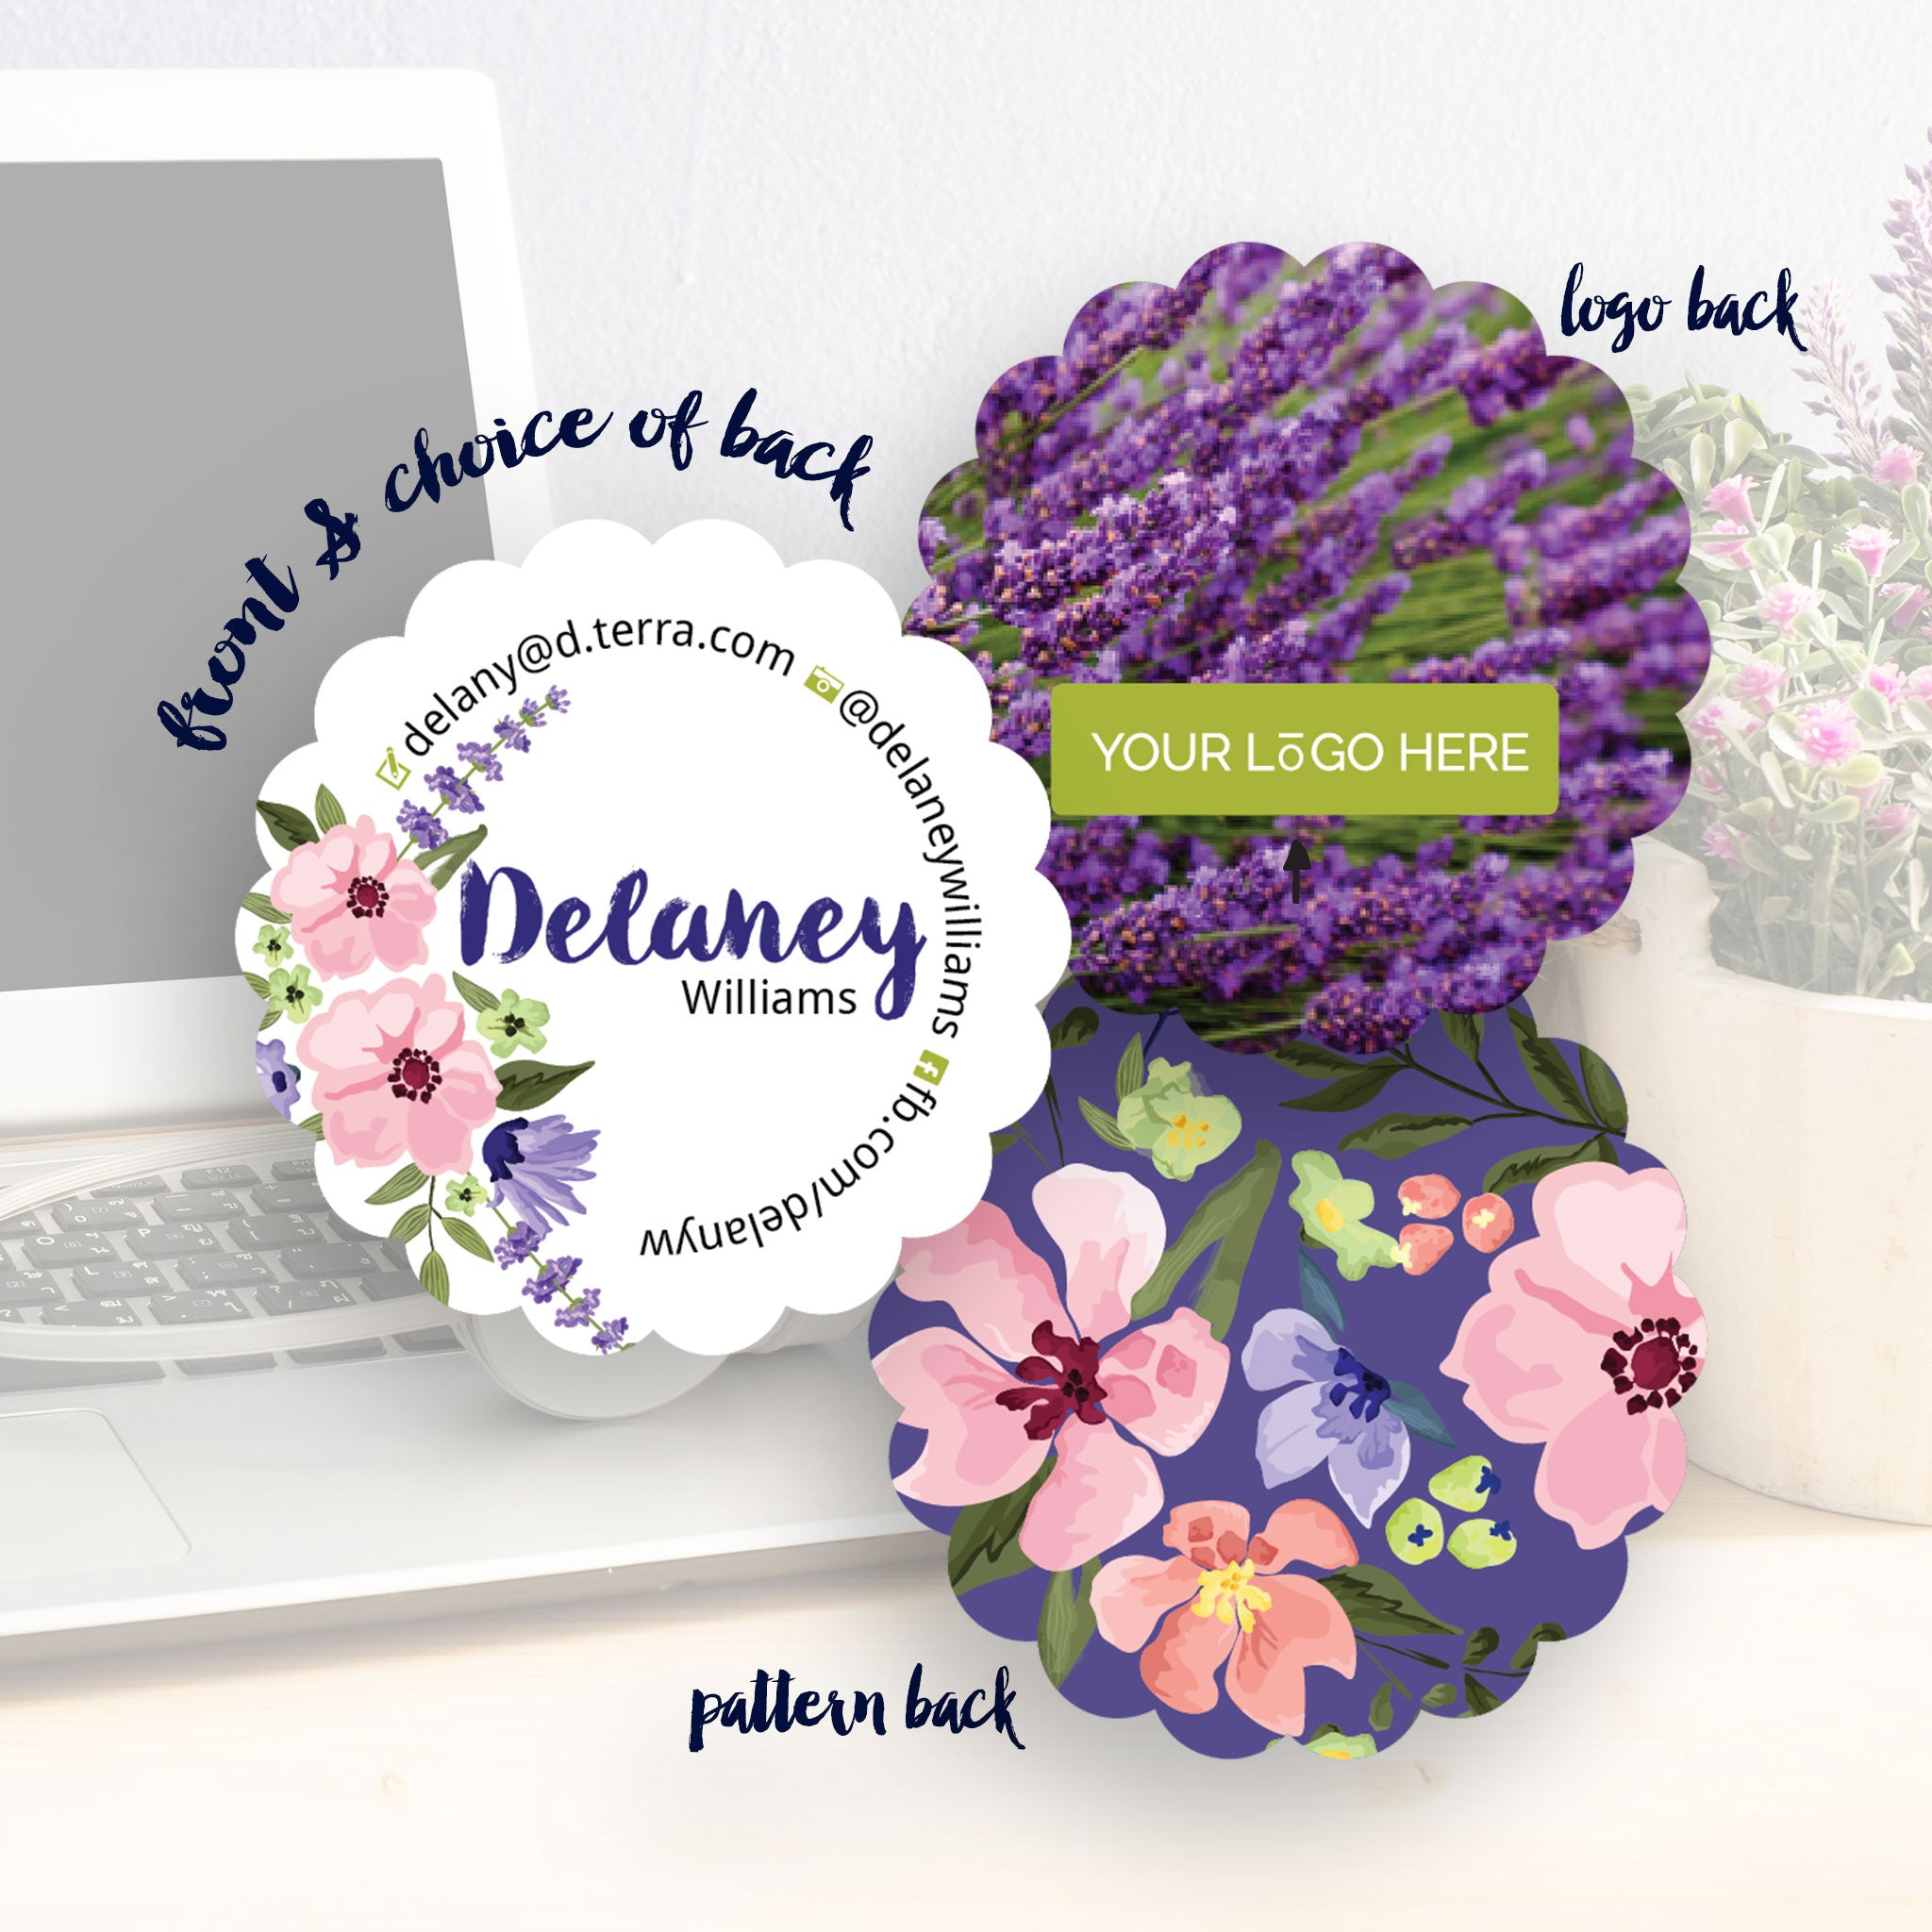 Delaney - Business Cards